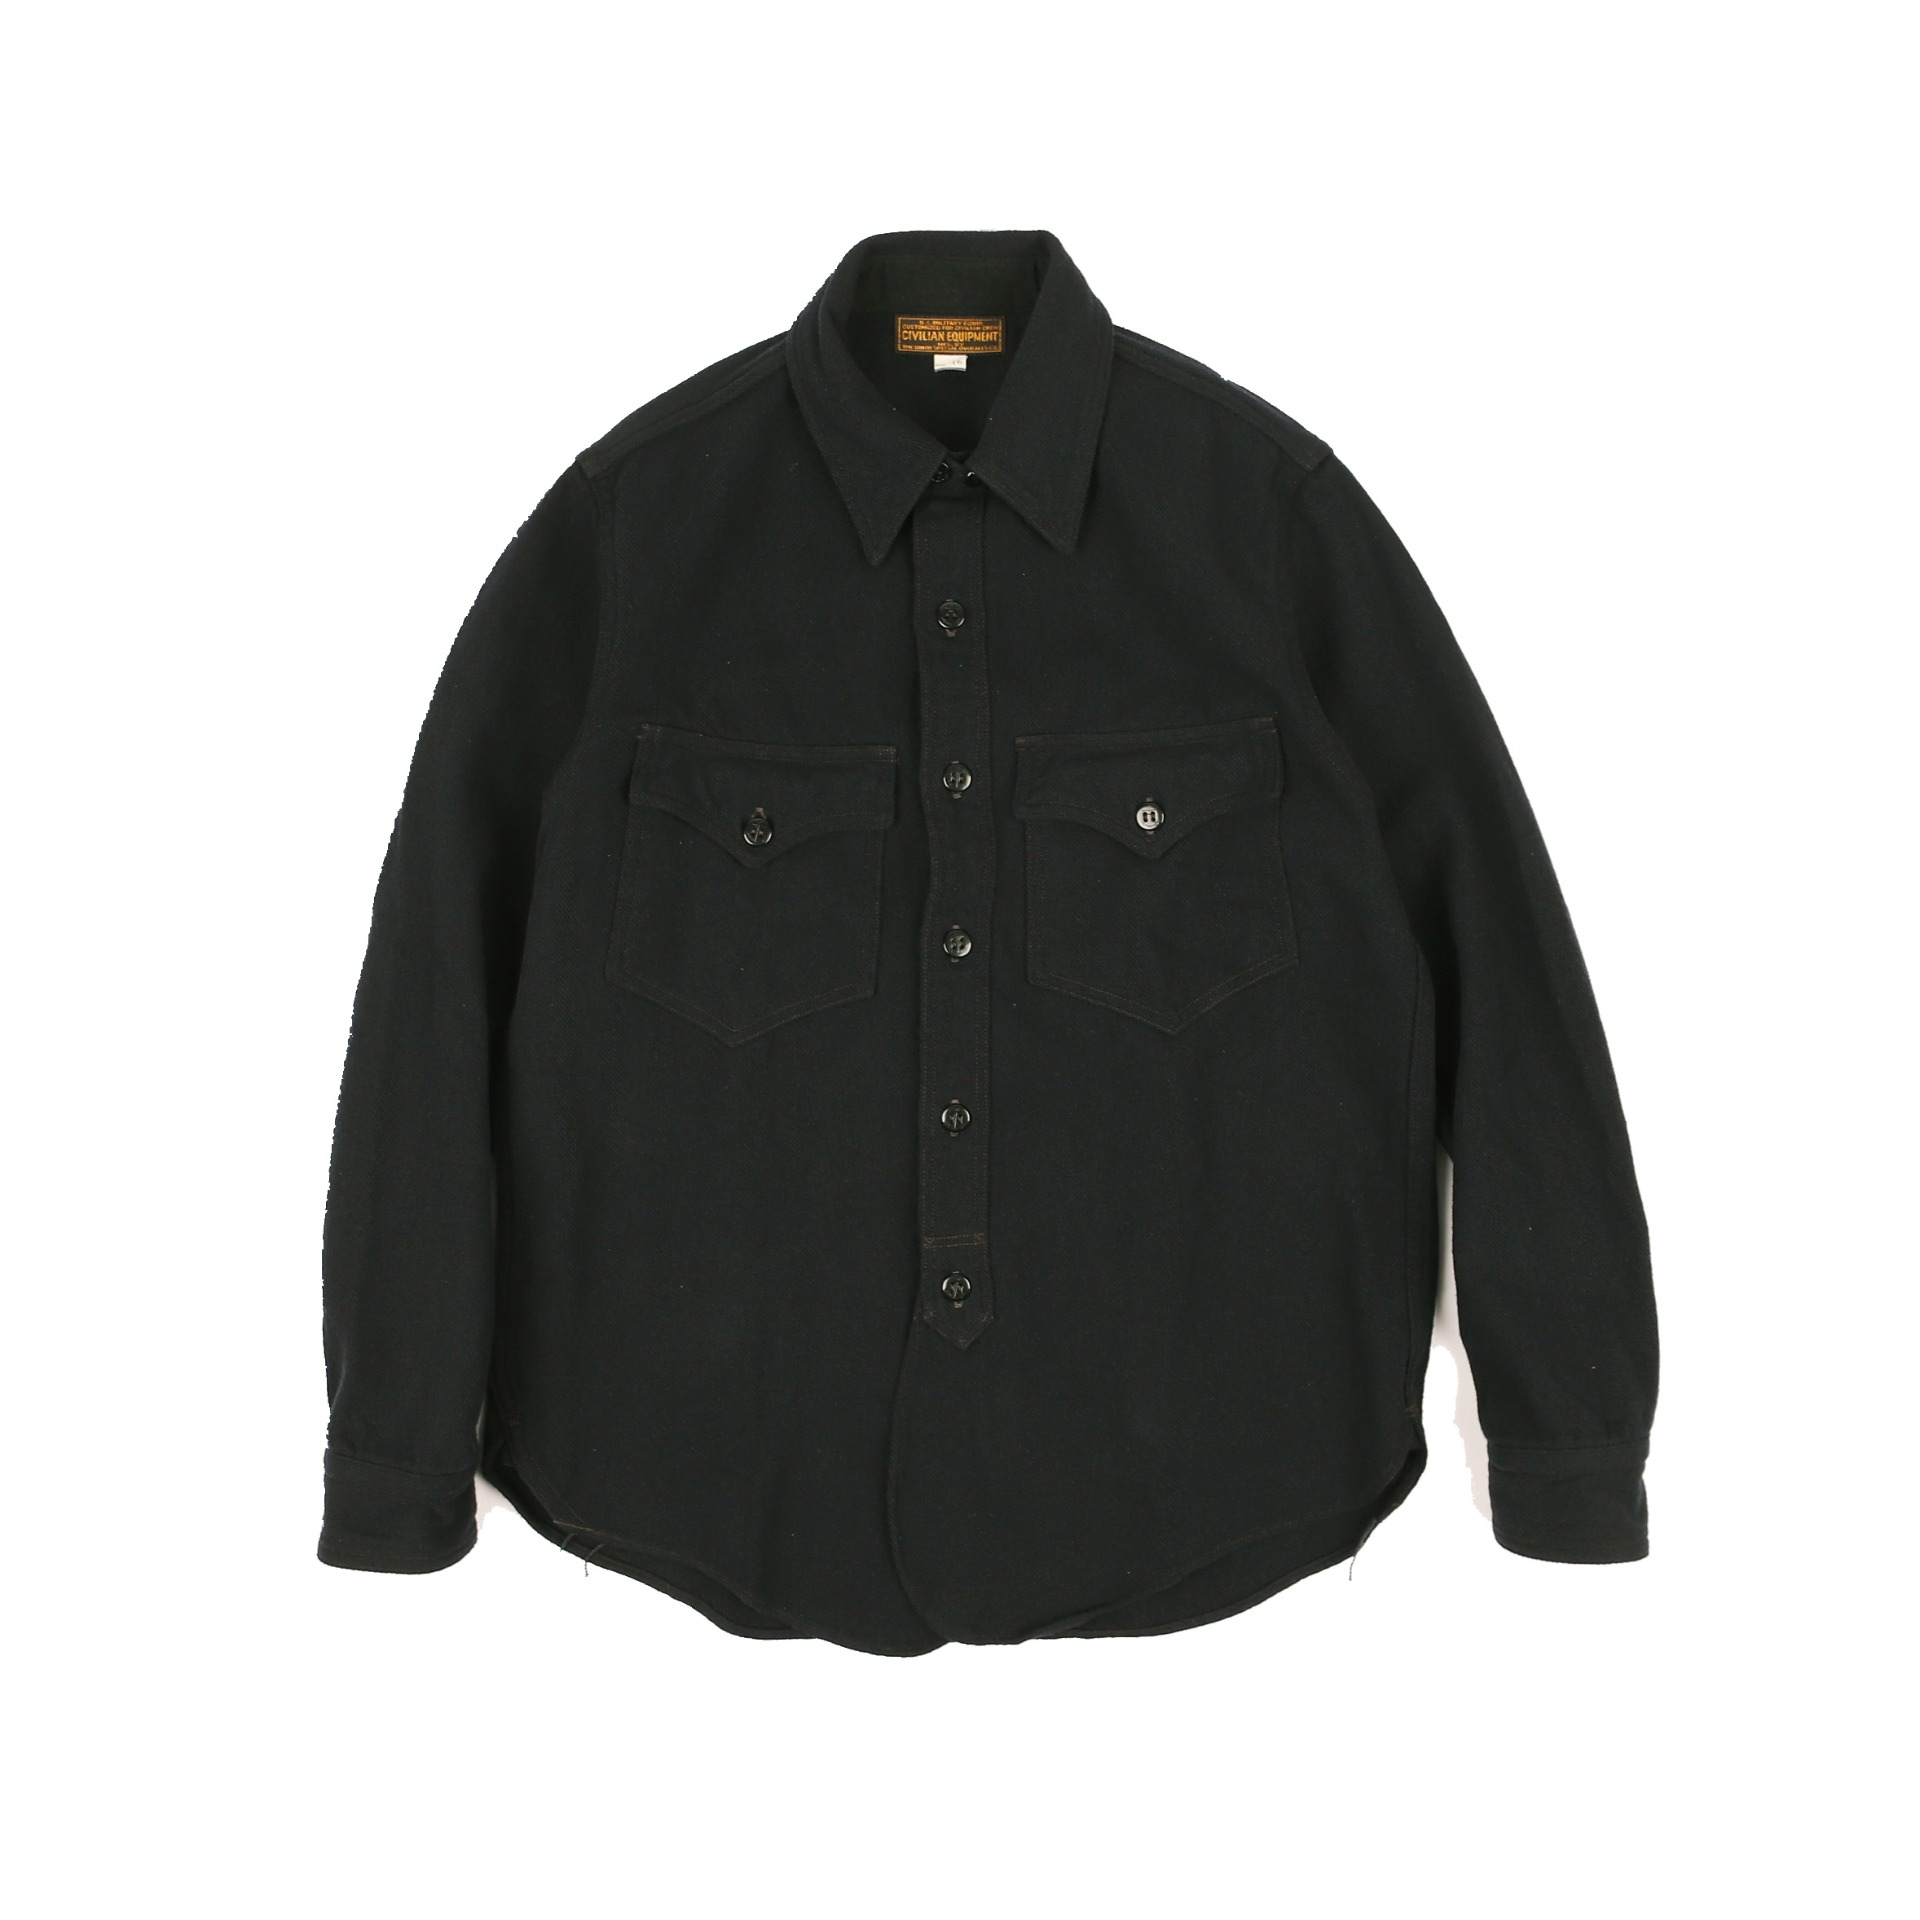 "[Union Special Ovealls]Military Shirt""OFFICER SHIRT""(Navy)"